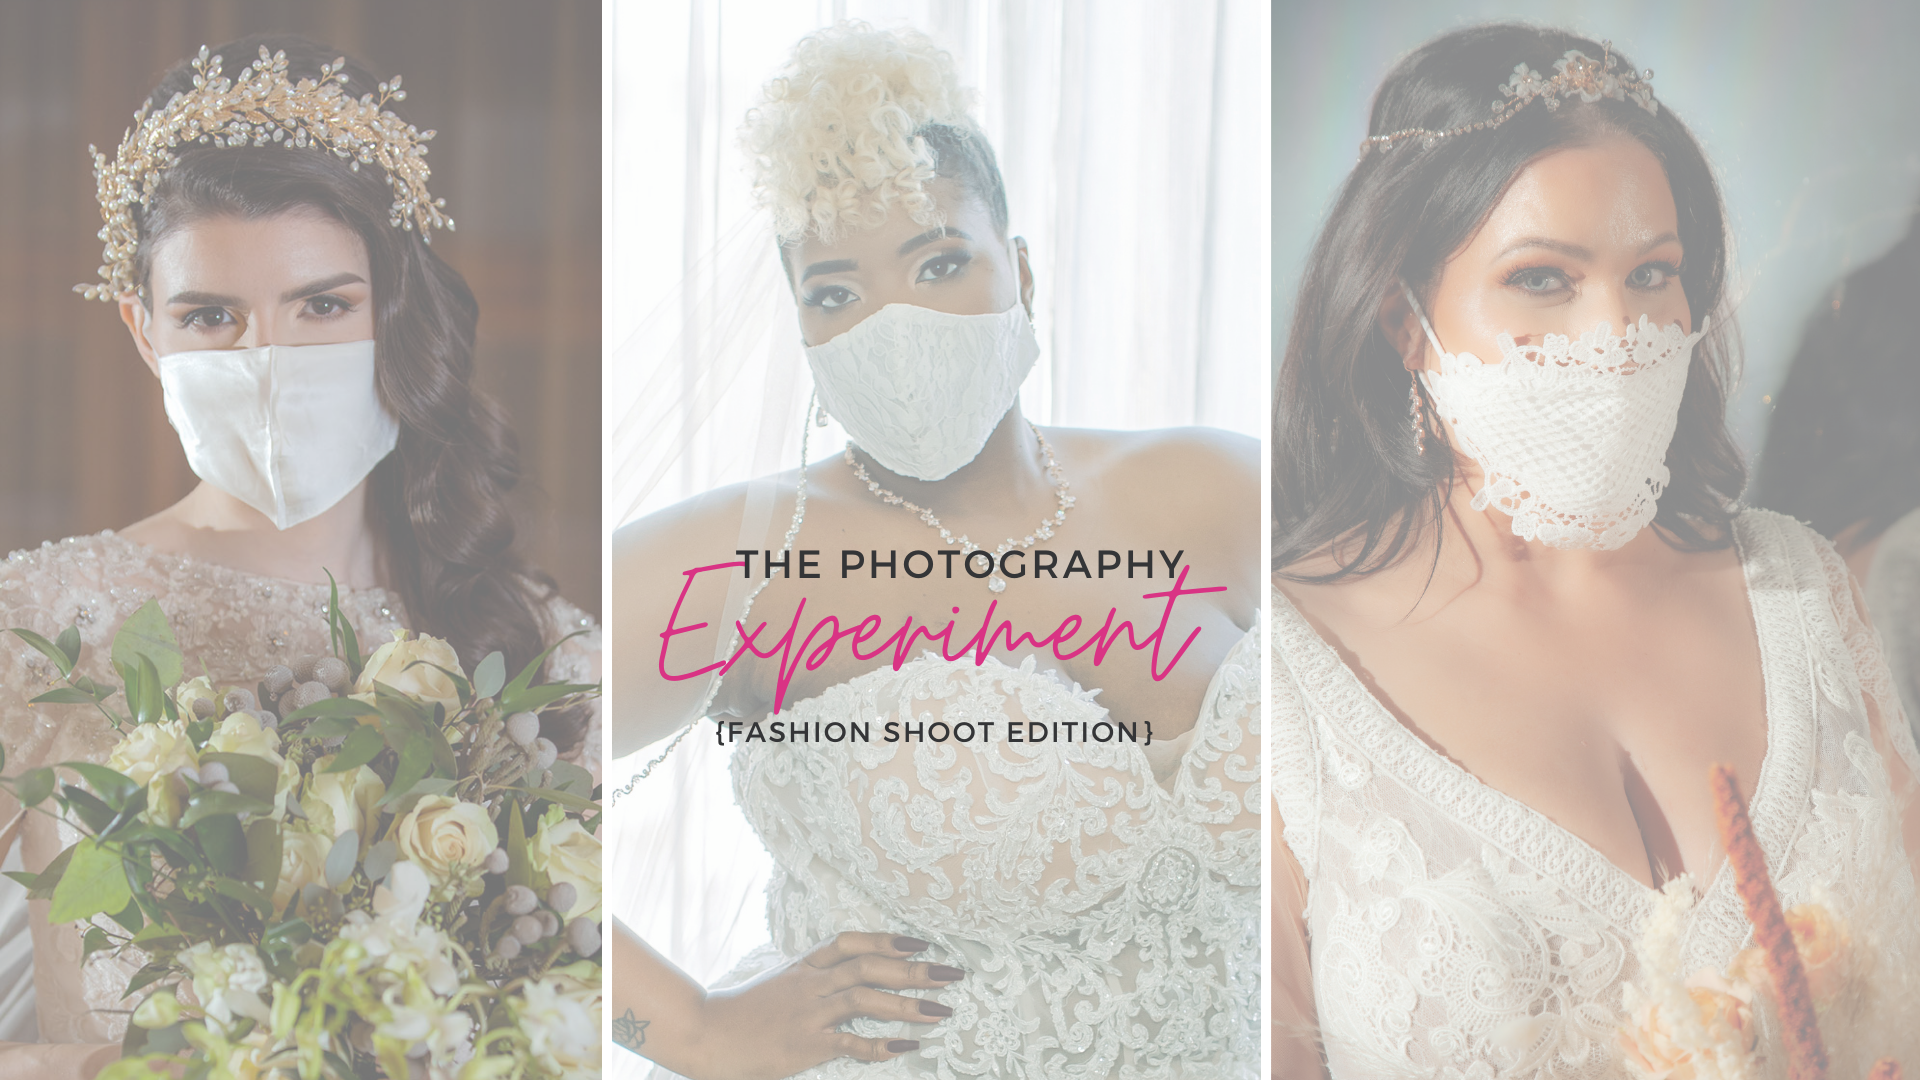 The Photography Experiment Fashion Shoot Edition